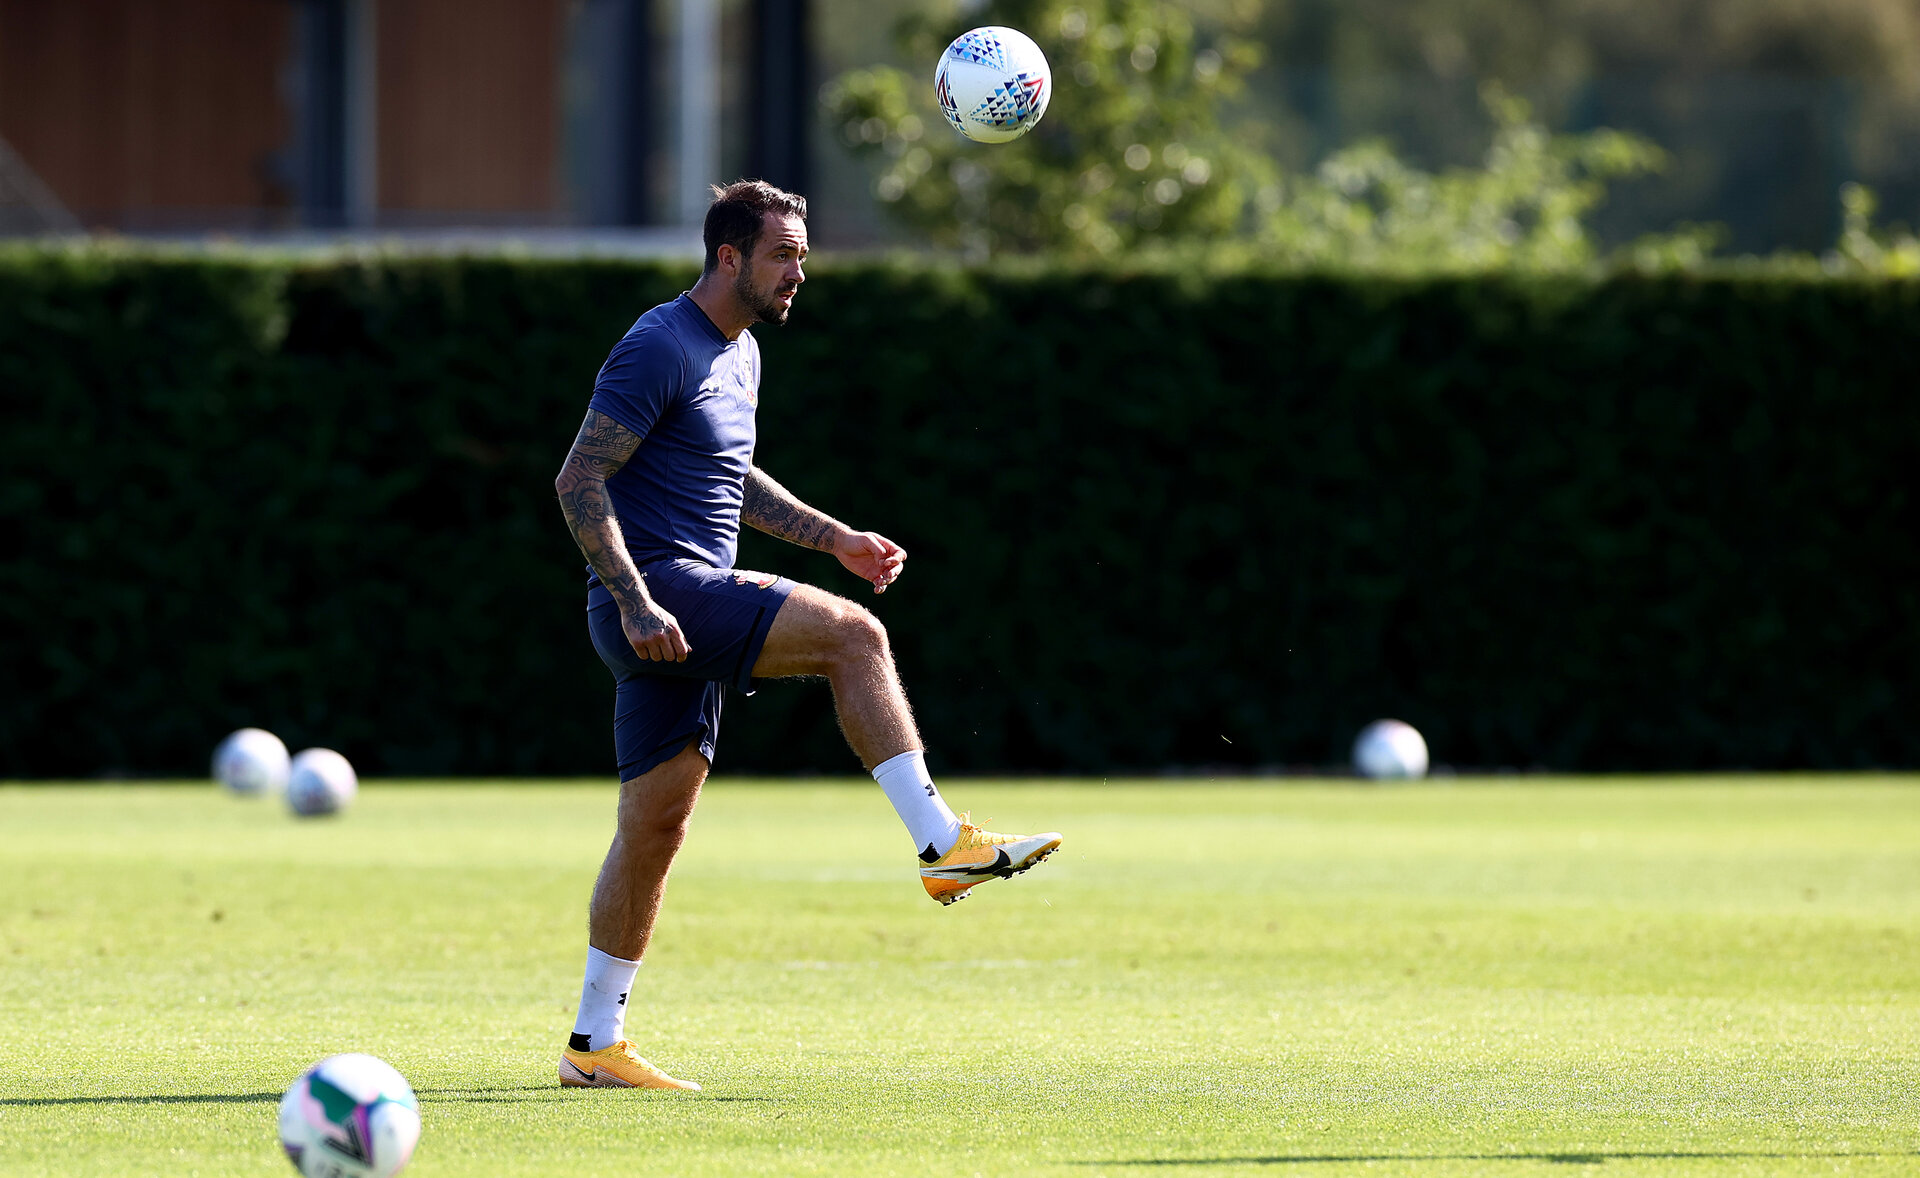 SOUTHAMPTON, ENGLAND - SEPTEMBER 14: Danny Ings during a Southampton FC training session at the Staplewood Campus on September 14, 2020 in Southampton, England. (Photo by Matt Watson/Southampton FC via Getty Images)